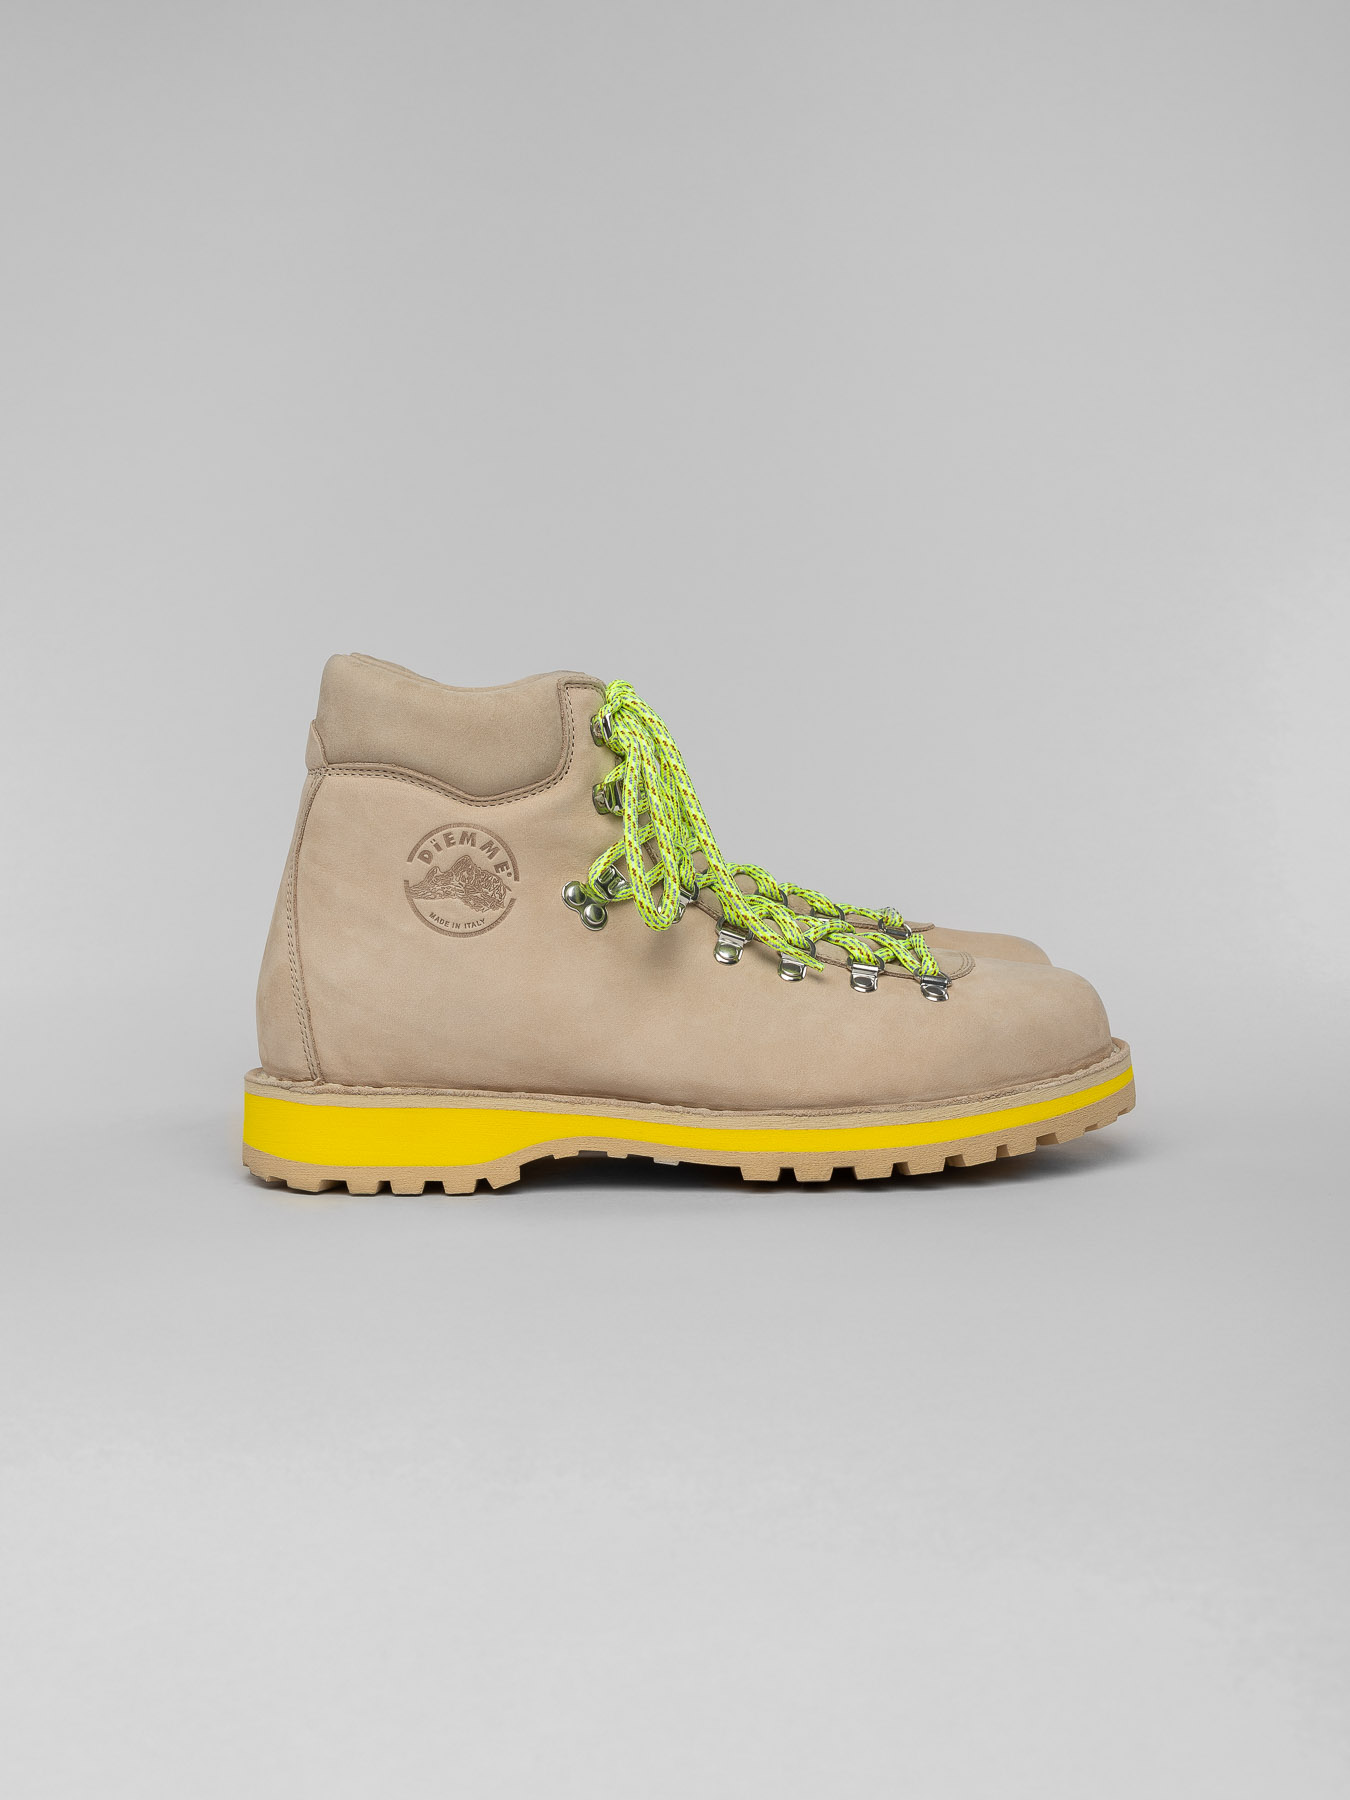 Diemme Roccia Vet Sand with Shearling